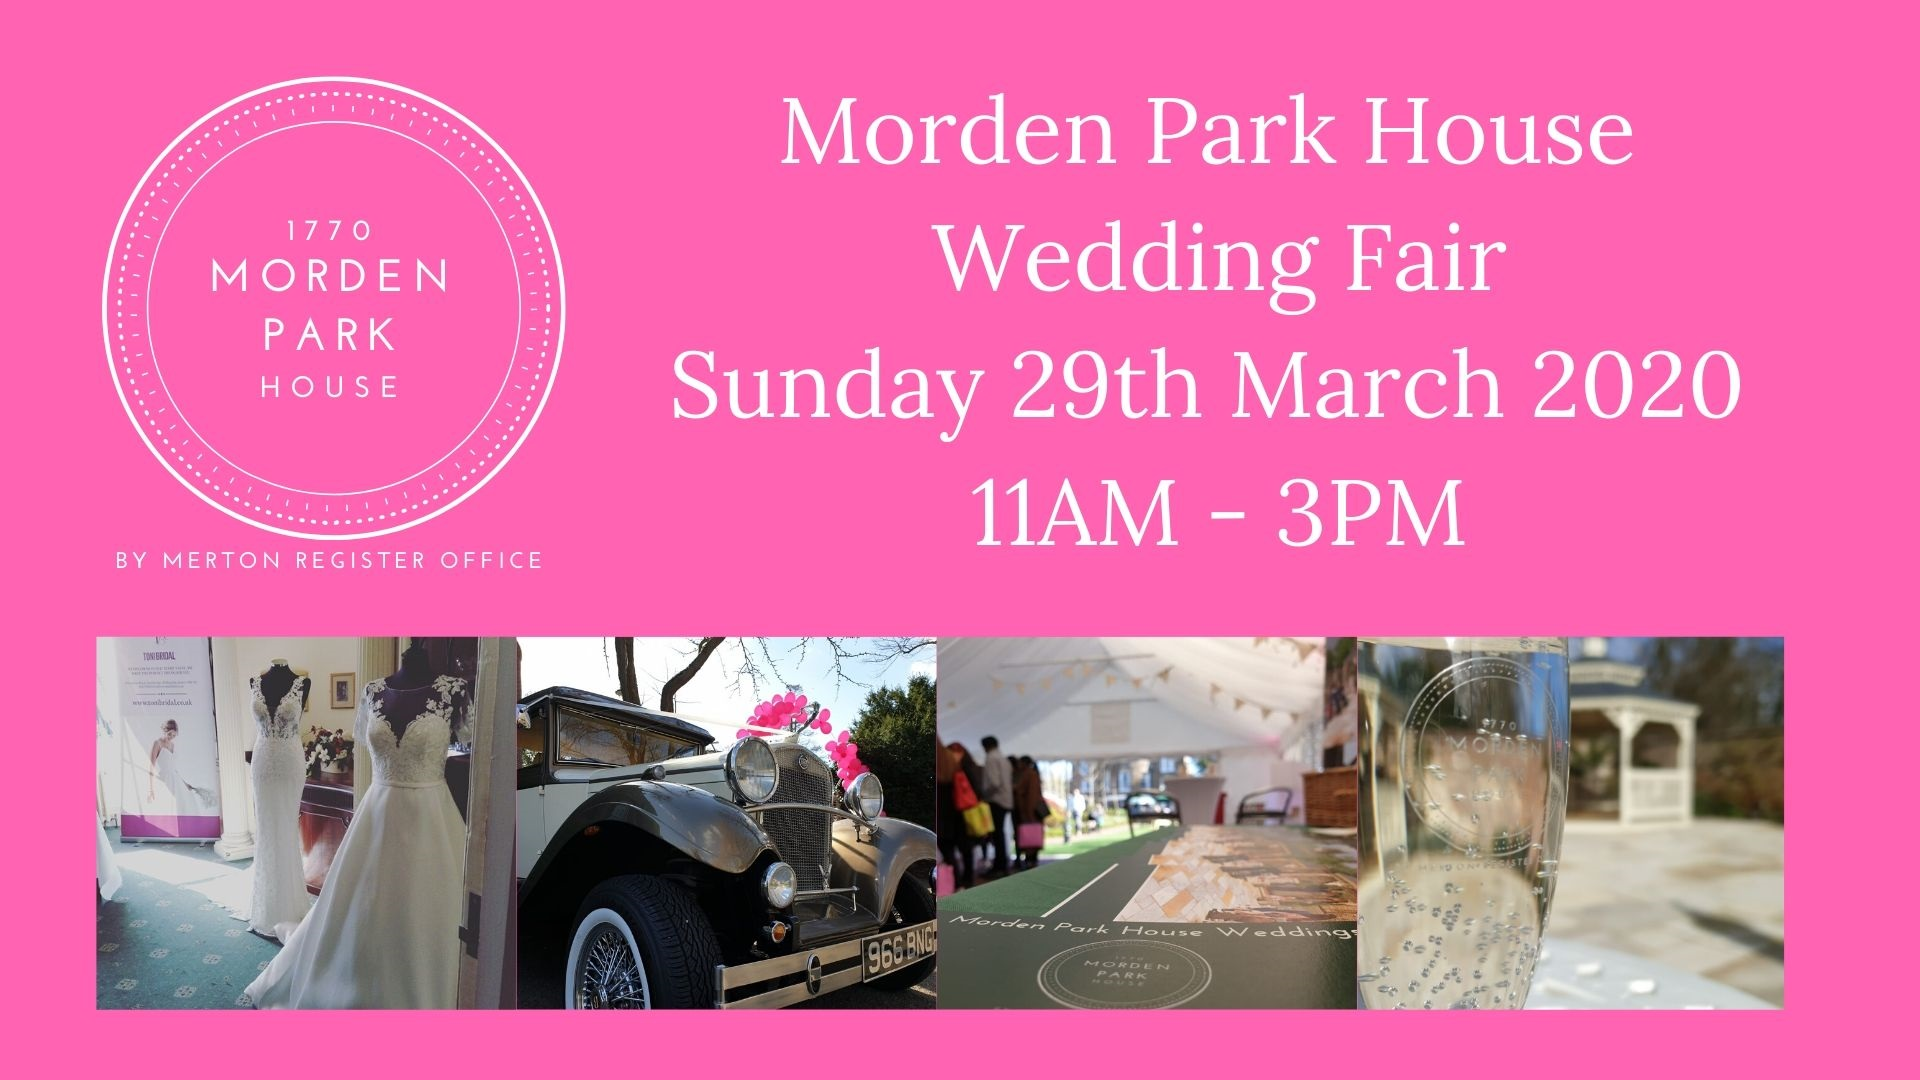 Morden Park House Wedding Fair